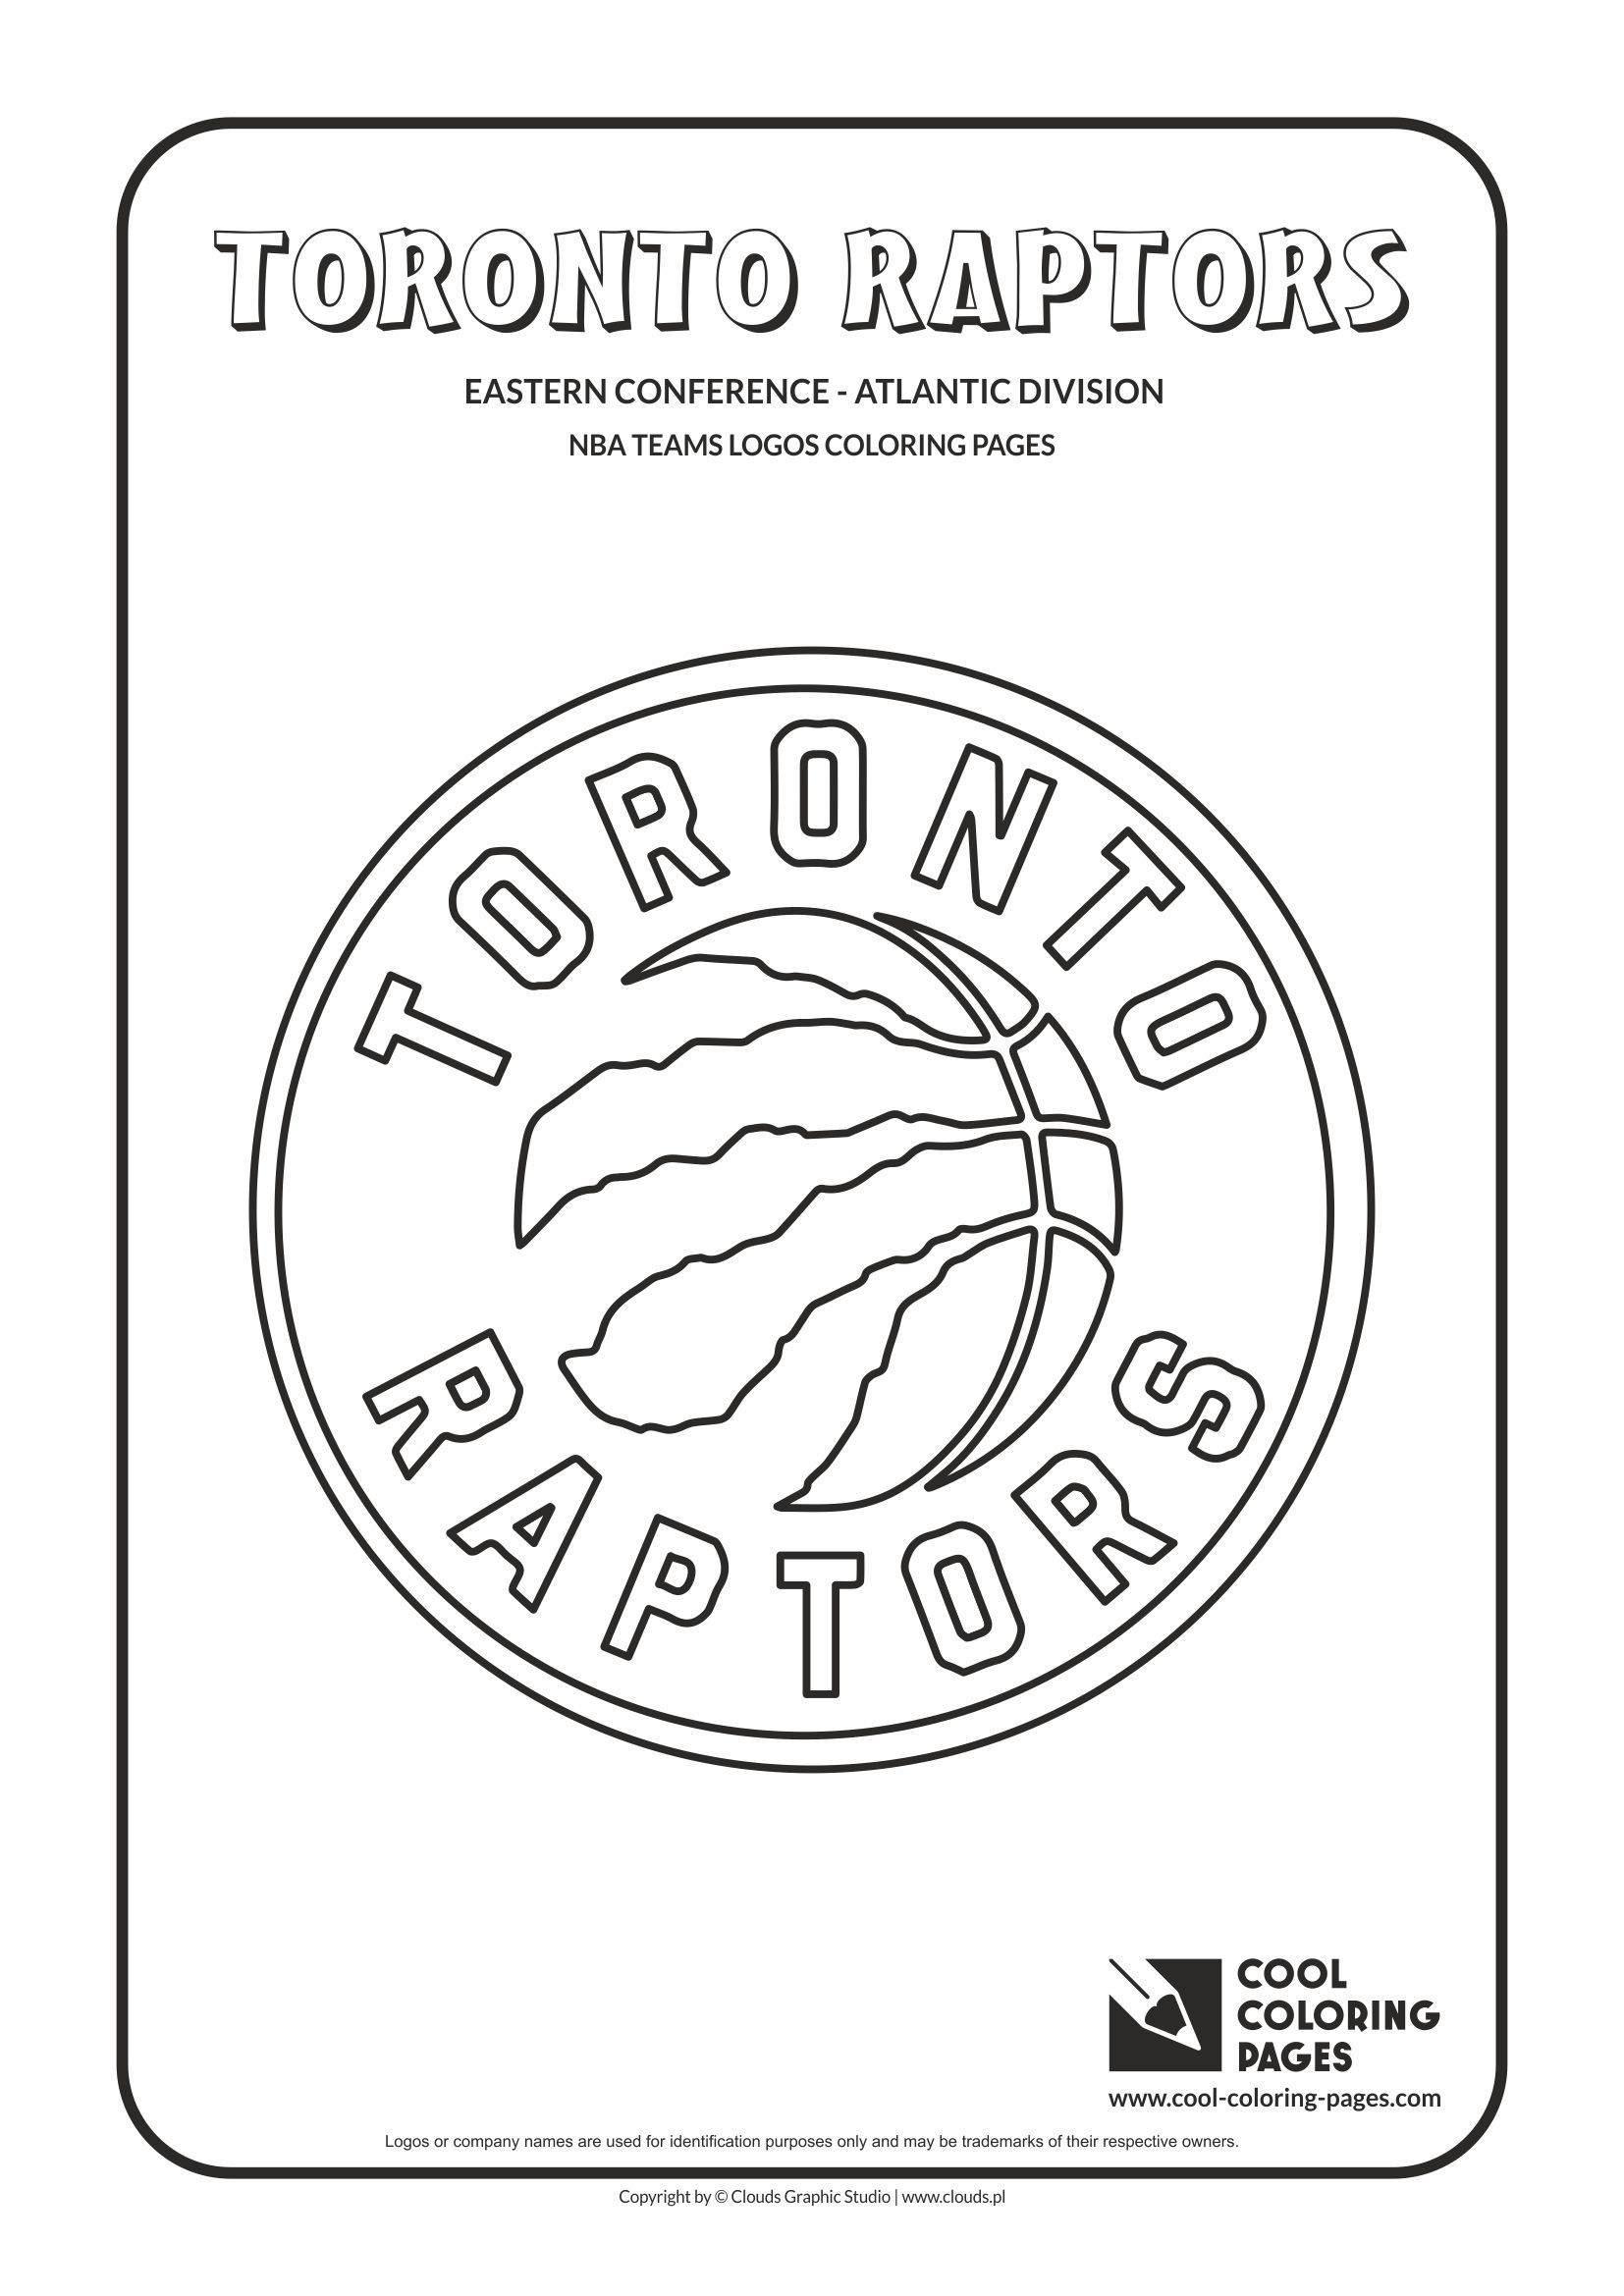 Cool Coloring Pages Nba Basketball Clubs Logos Eastern Conference Atlantic Division Toronto Raptors Logo Cool Coloring Pages Raptors Toronto Raptors